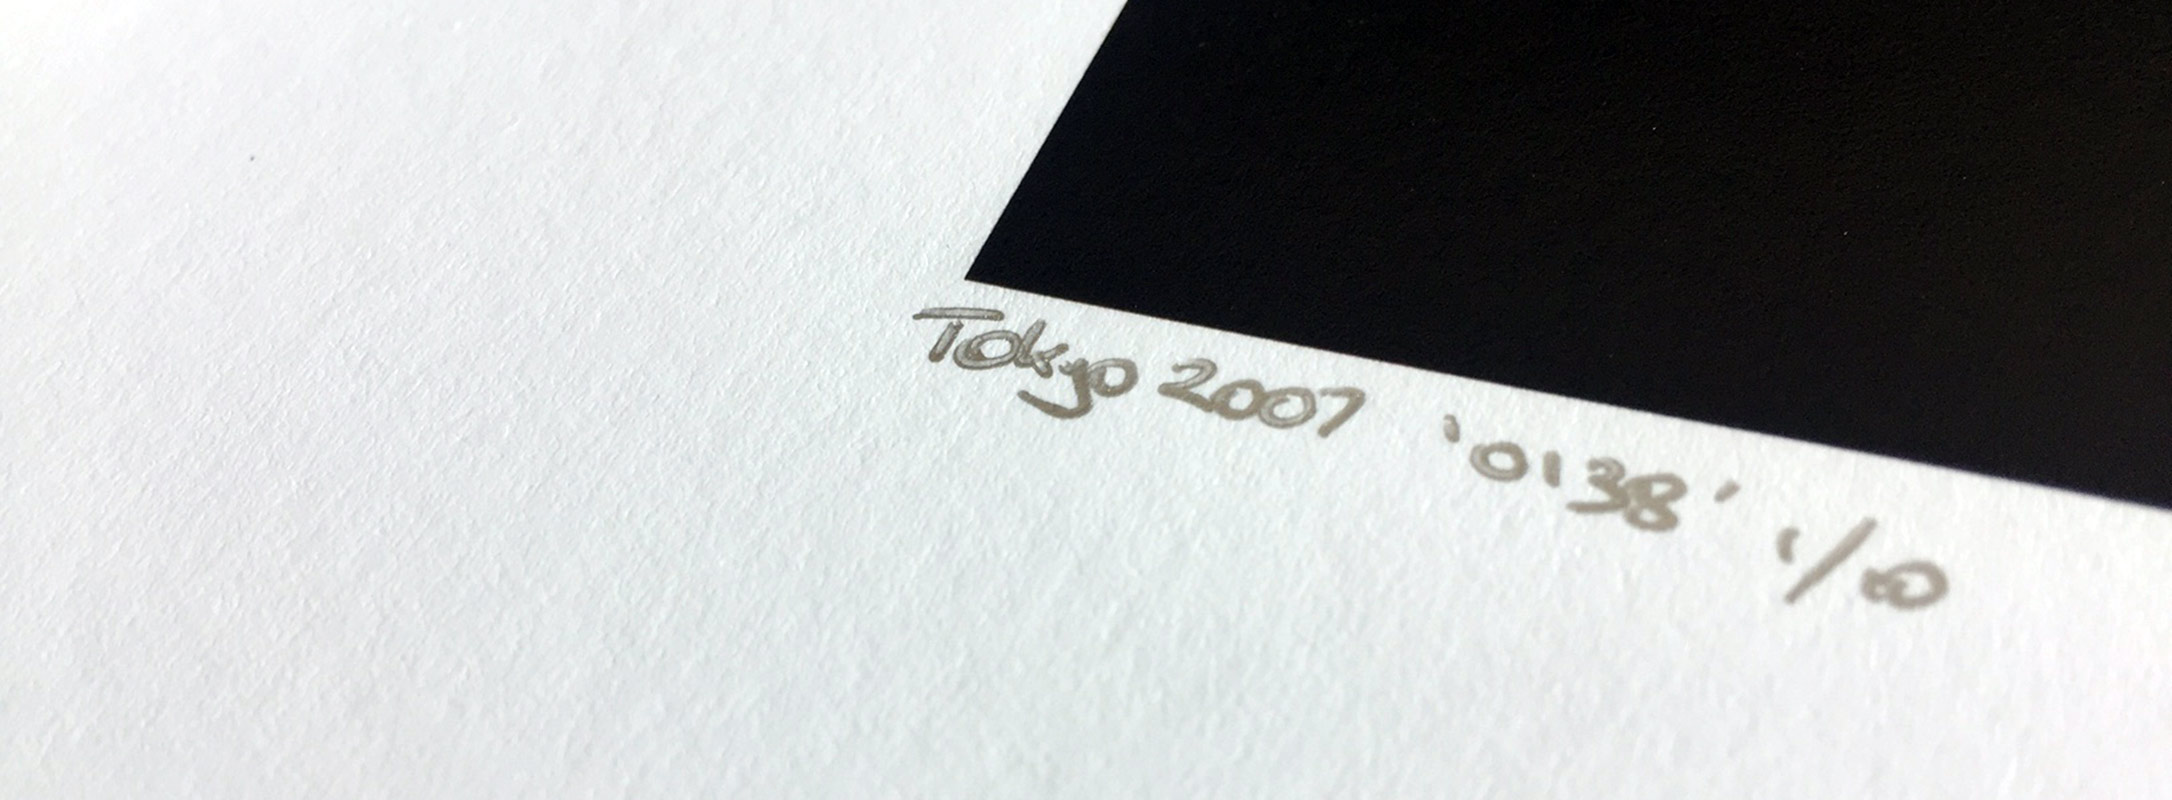 annotations recto to vintage tokyo taxi print